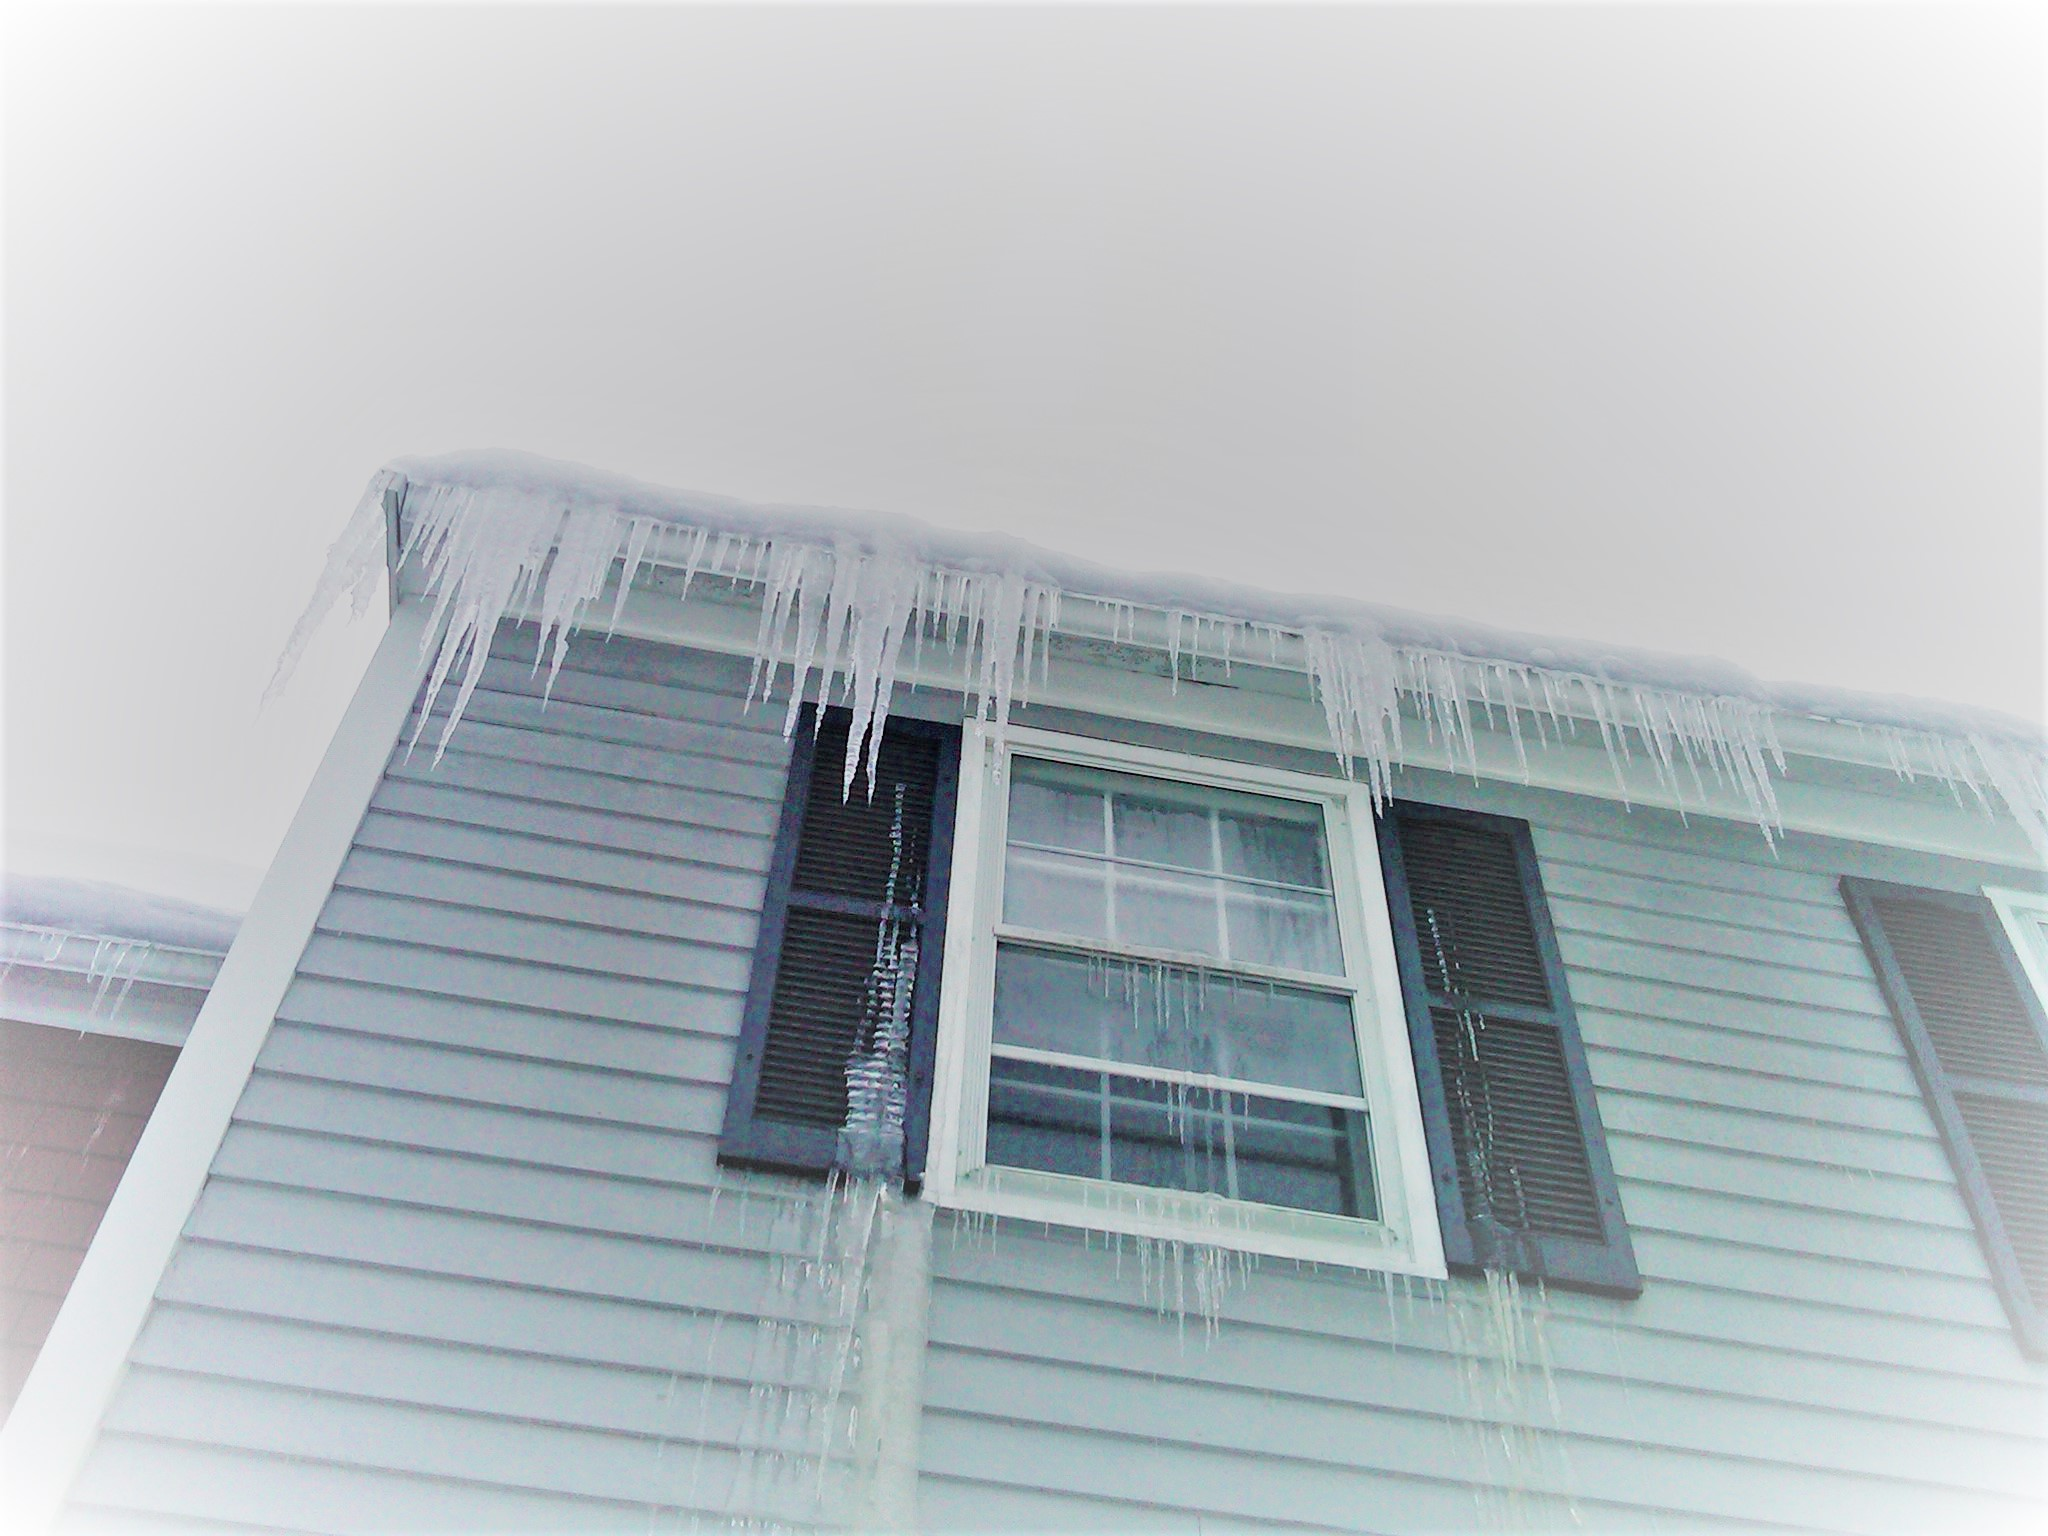 Ice Dams can bring damage to your property.  Icicles are one indicator of ice dams.